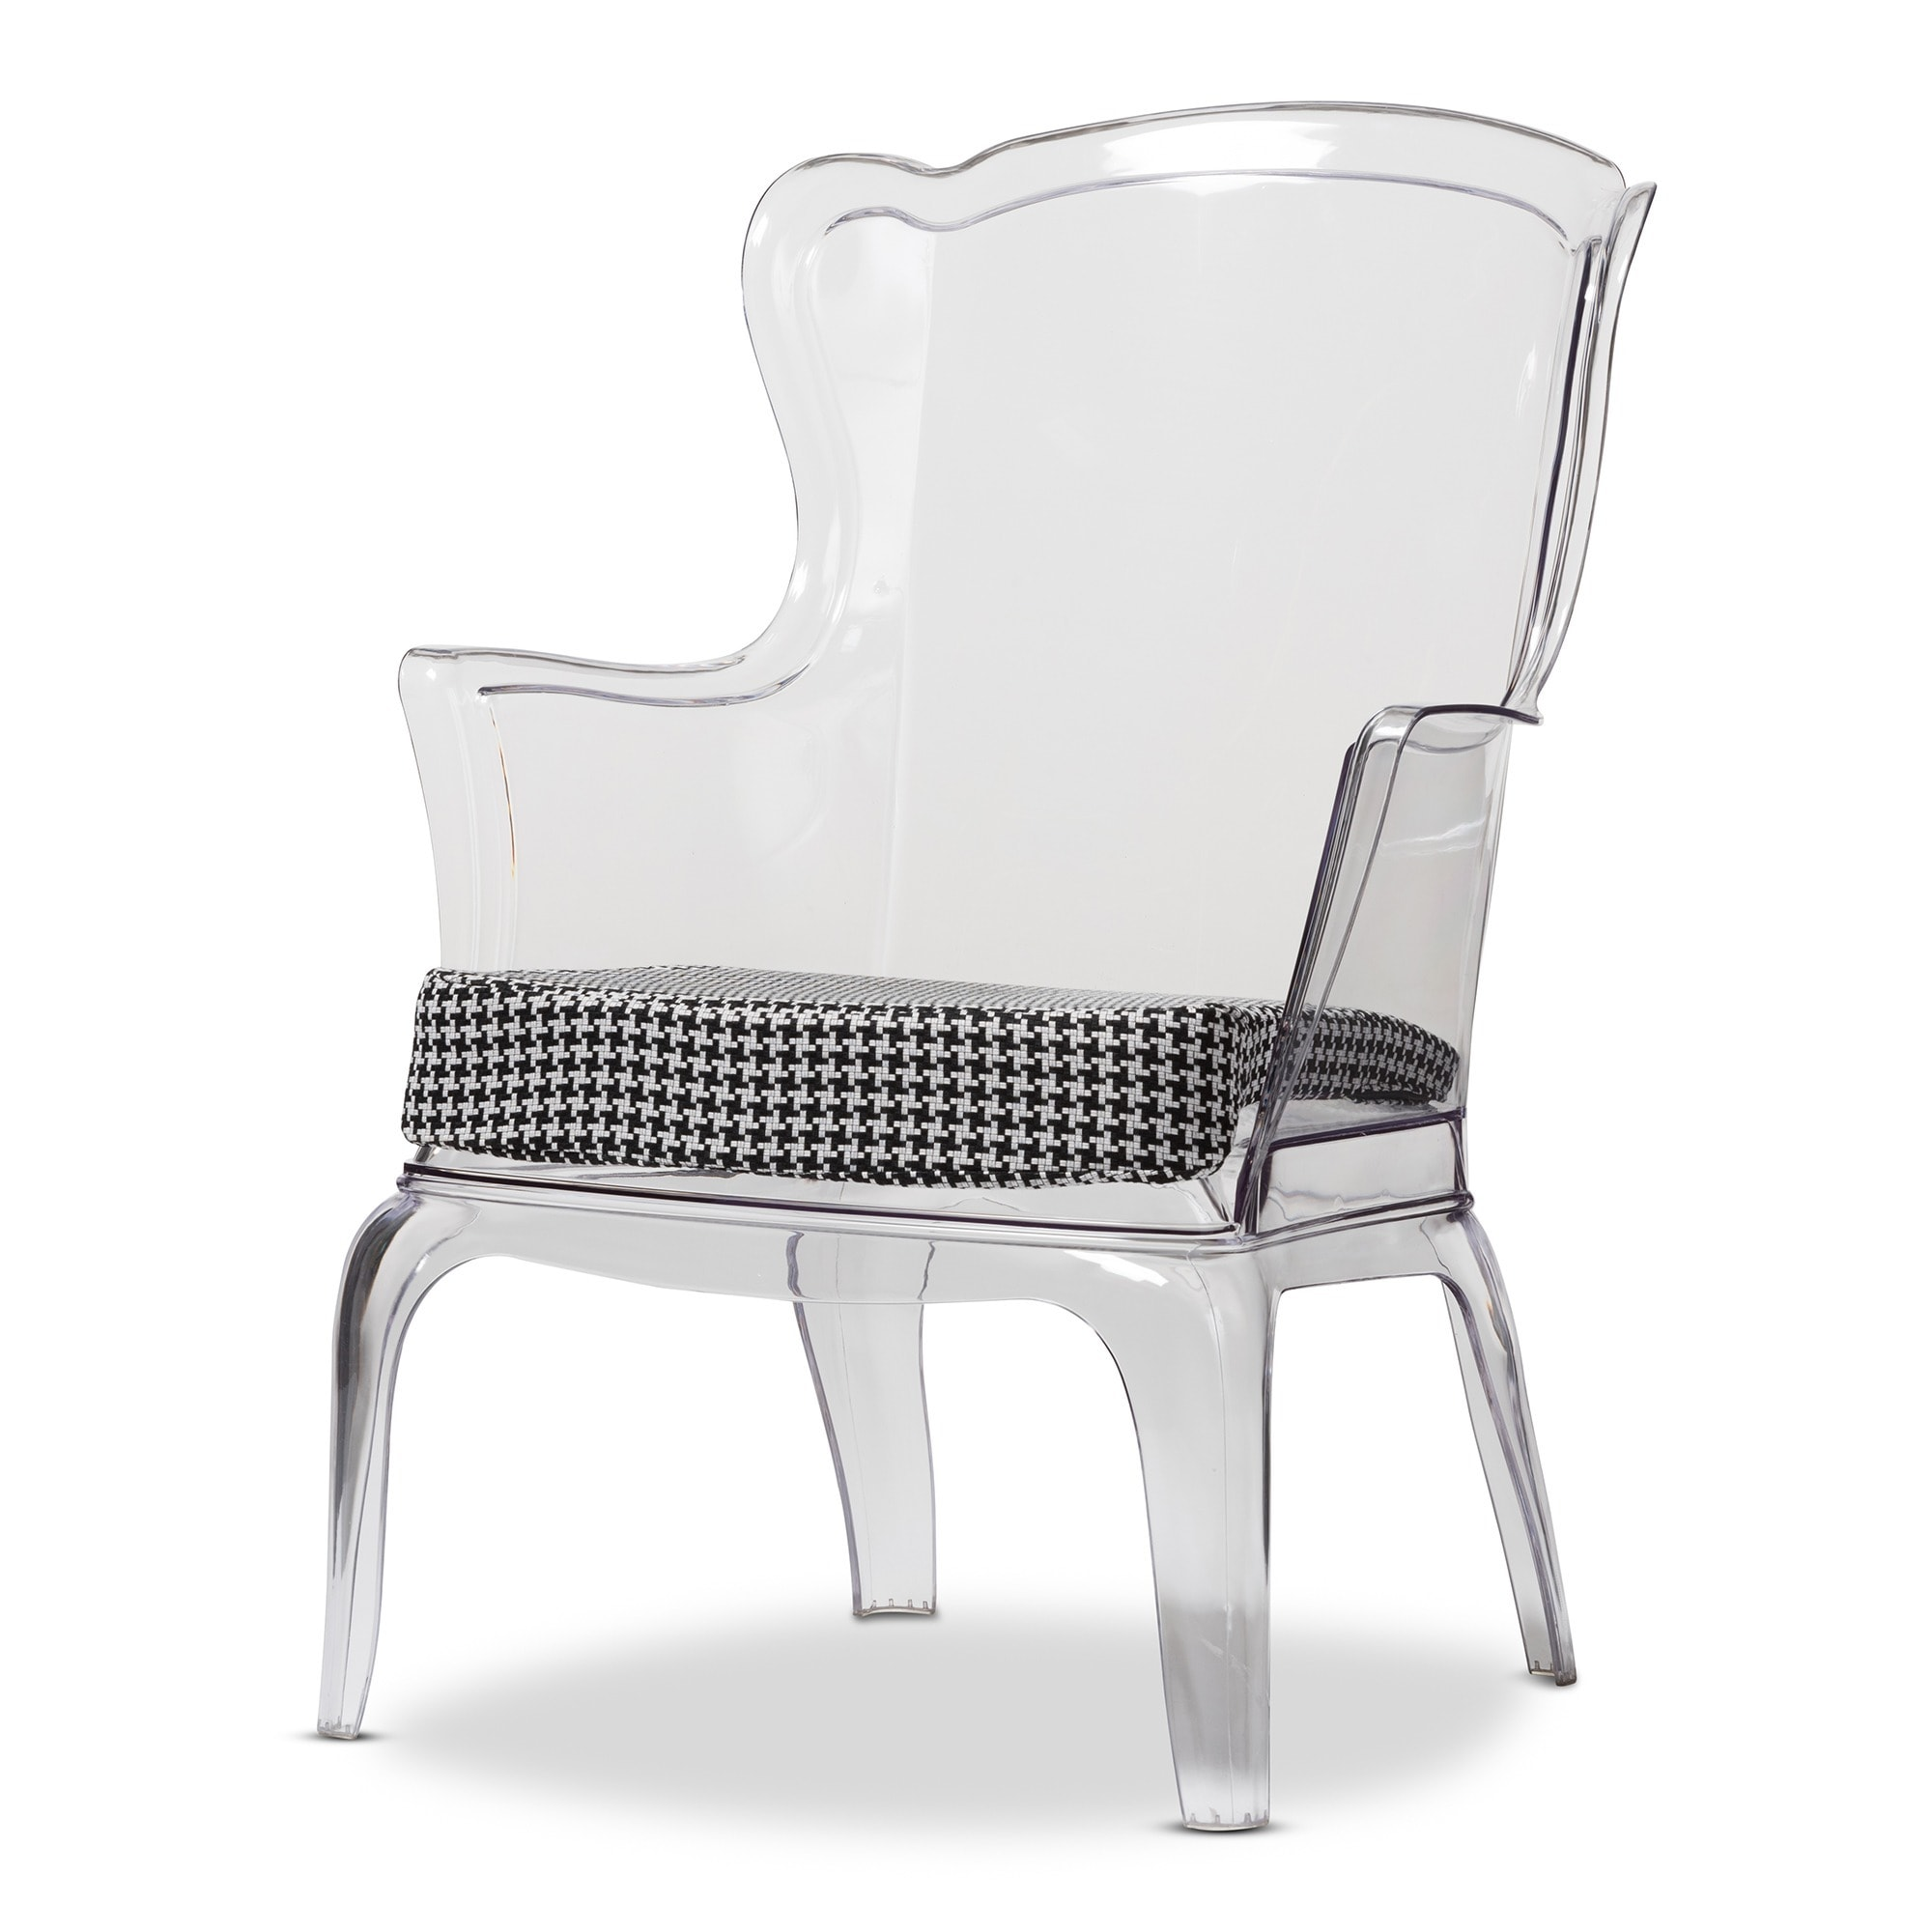 Delicieux Shop Baxton Studio Tasha Clear Polycarbonate Modern Accent Chair   Free  Shipping Today   Overstock.com   8458982